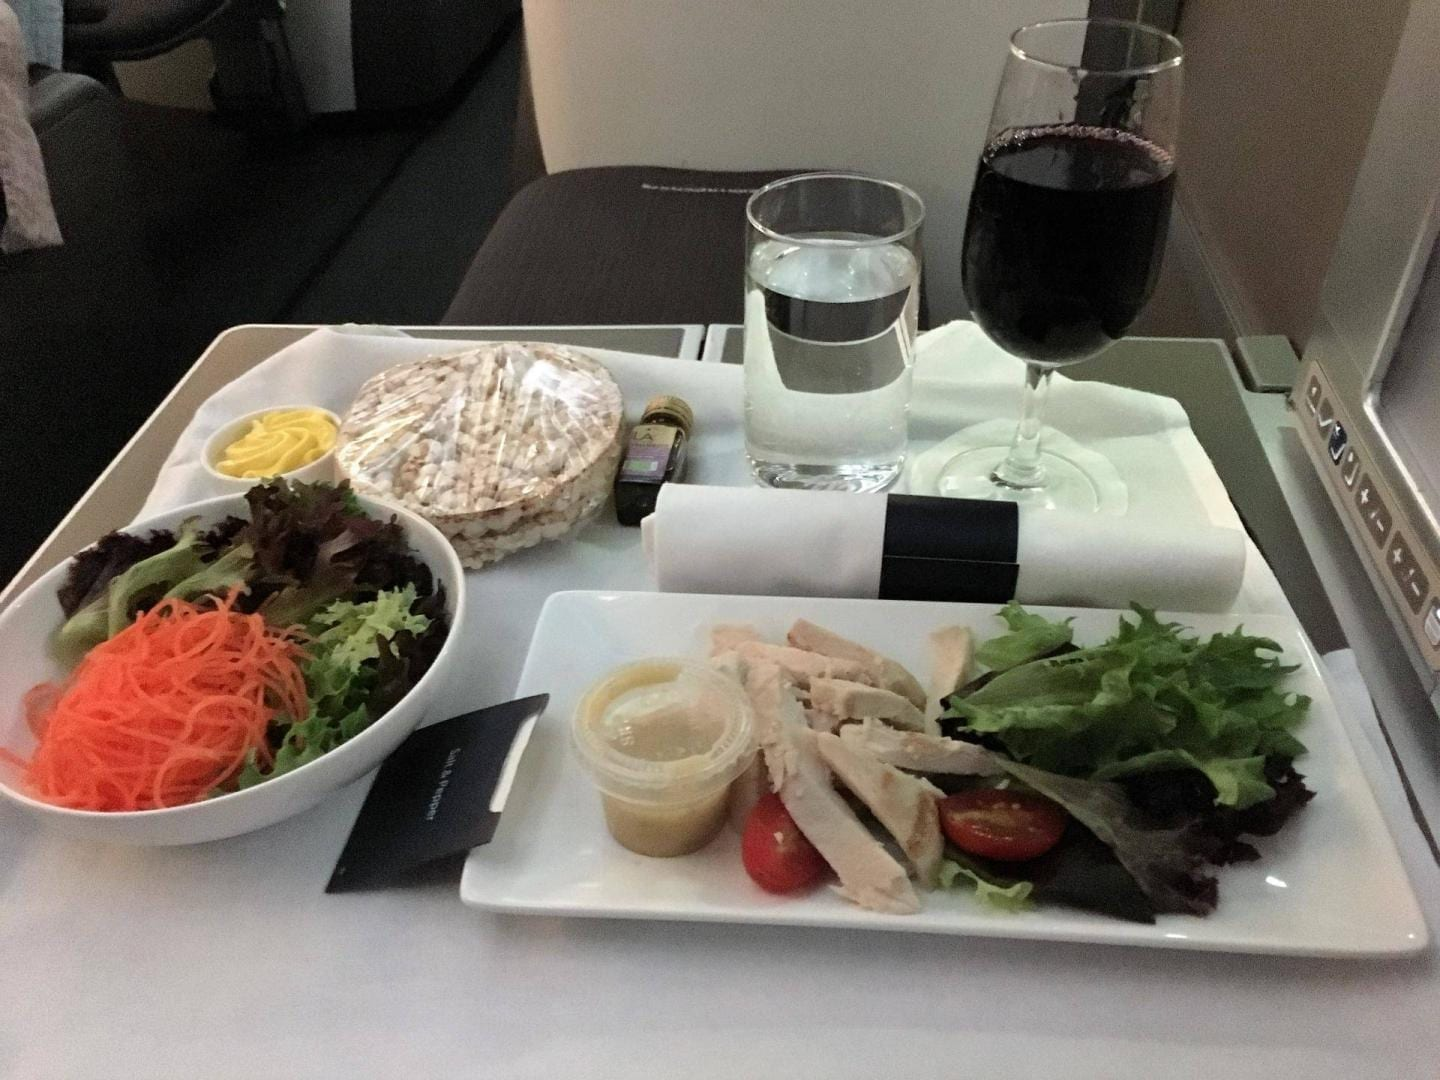 adventures of a gluten free globetrekker Half Way Around the World (And Back) In Gluten Free Airline Meals Australia Gluten Free Airline Meals gluten free travel Gluten Free Travel International  gluten free inflight catering gluten free flying gluten free British Airways